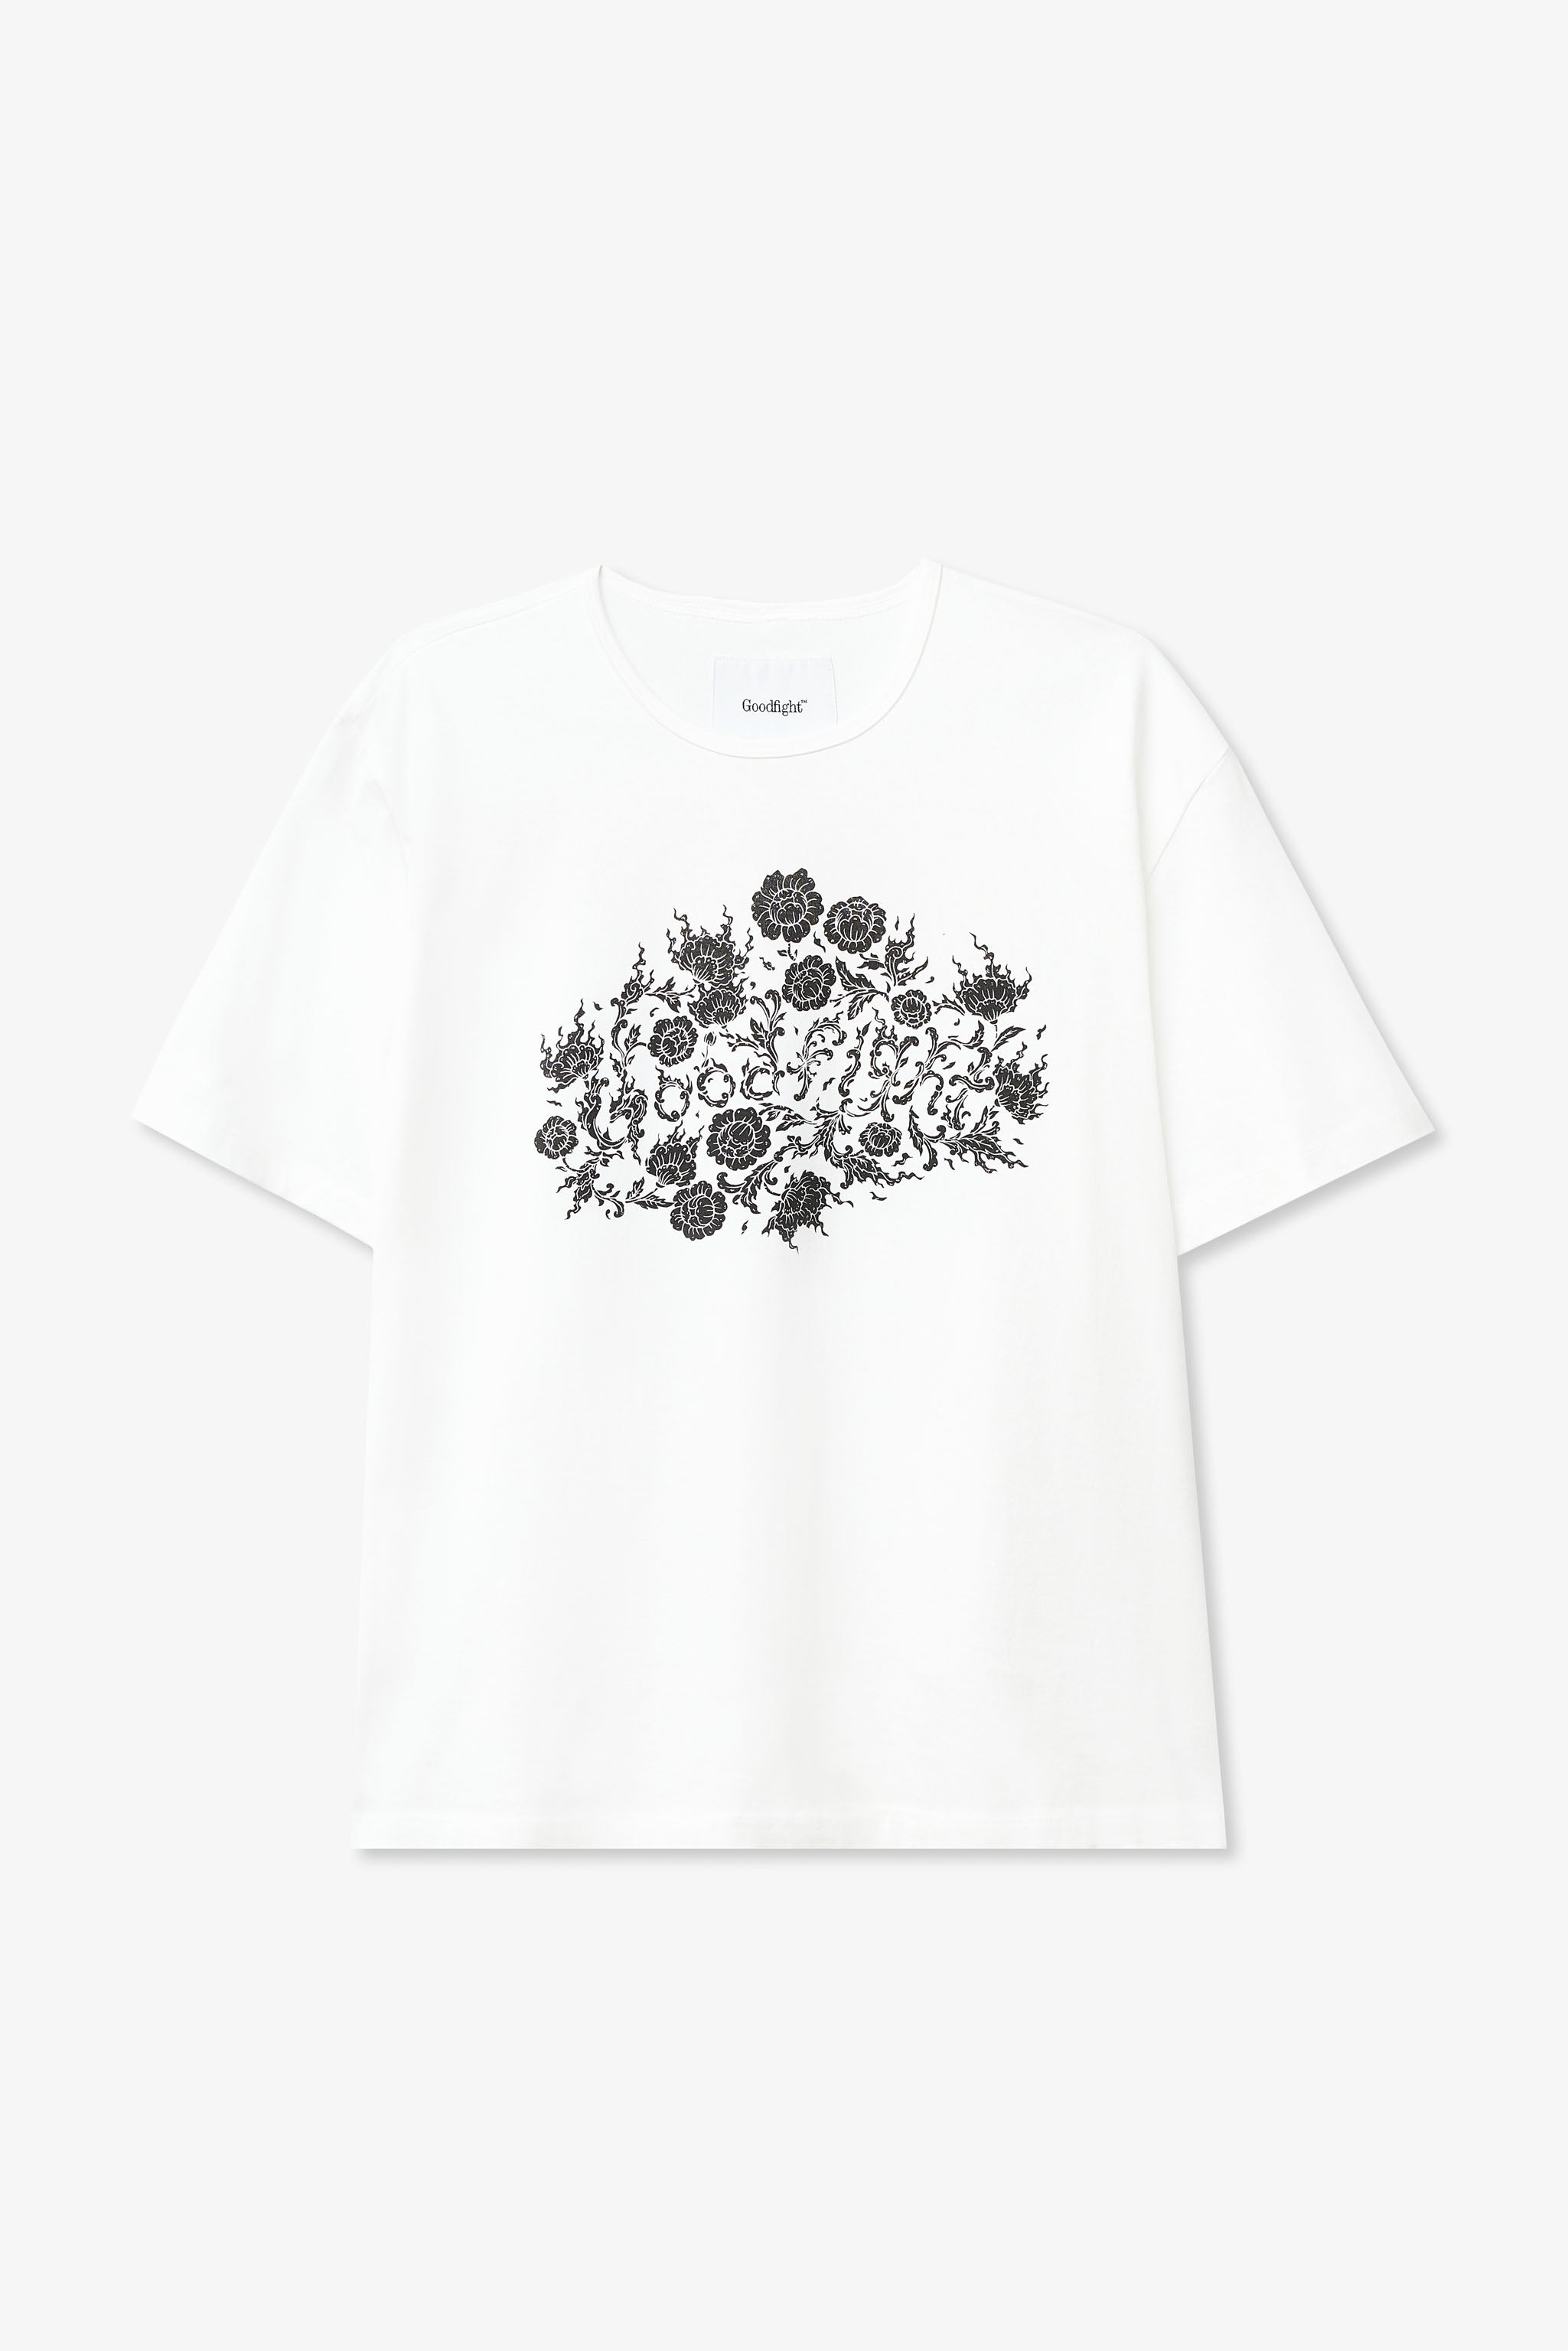 Goodfight North Am Tour Tee White